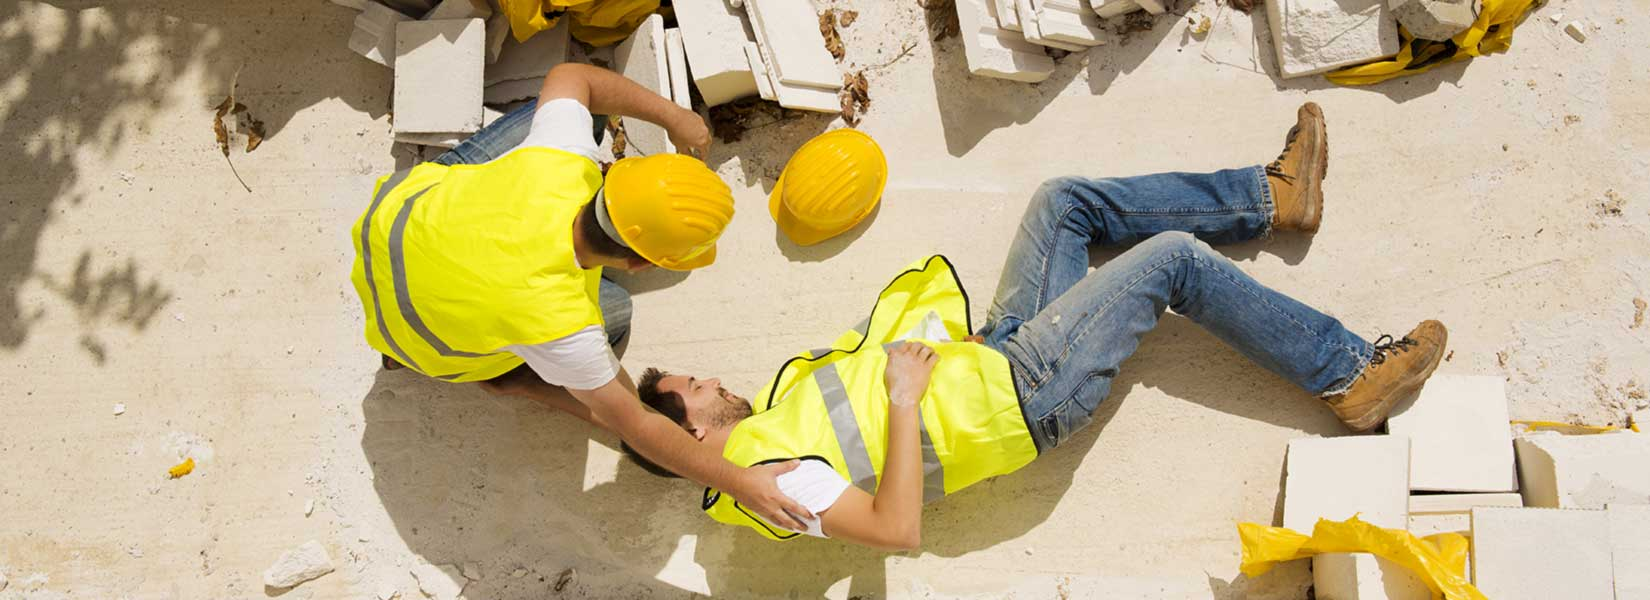 workers compensation lawyers in baton rouge, louisiana workers compensation attorneys